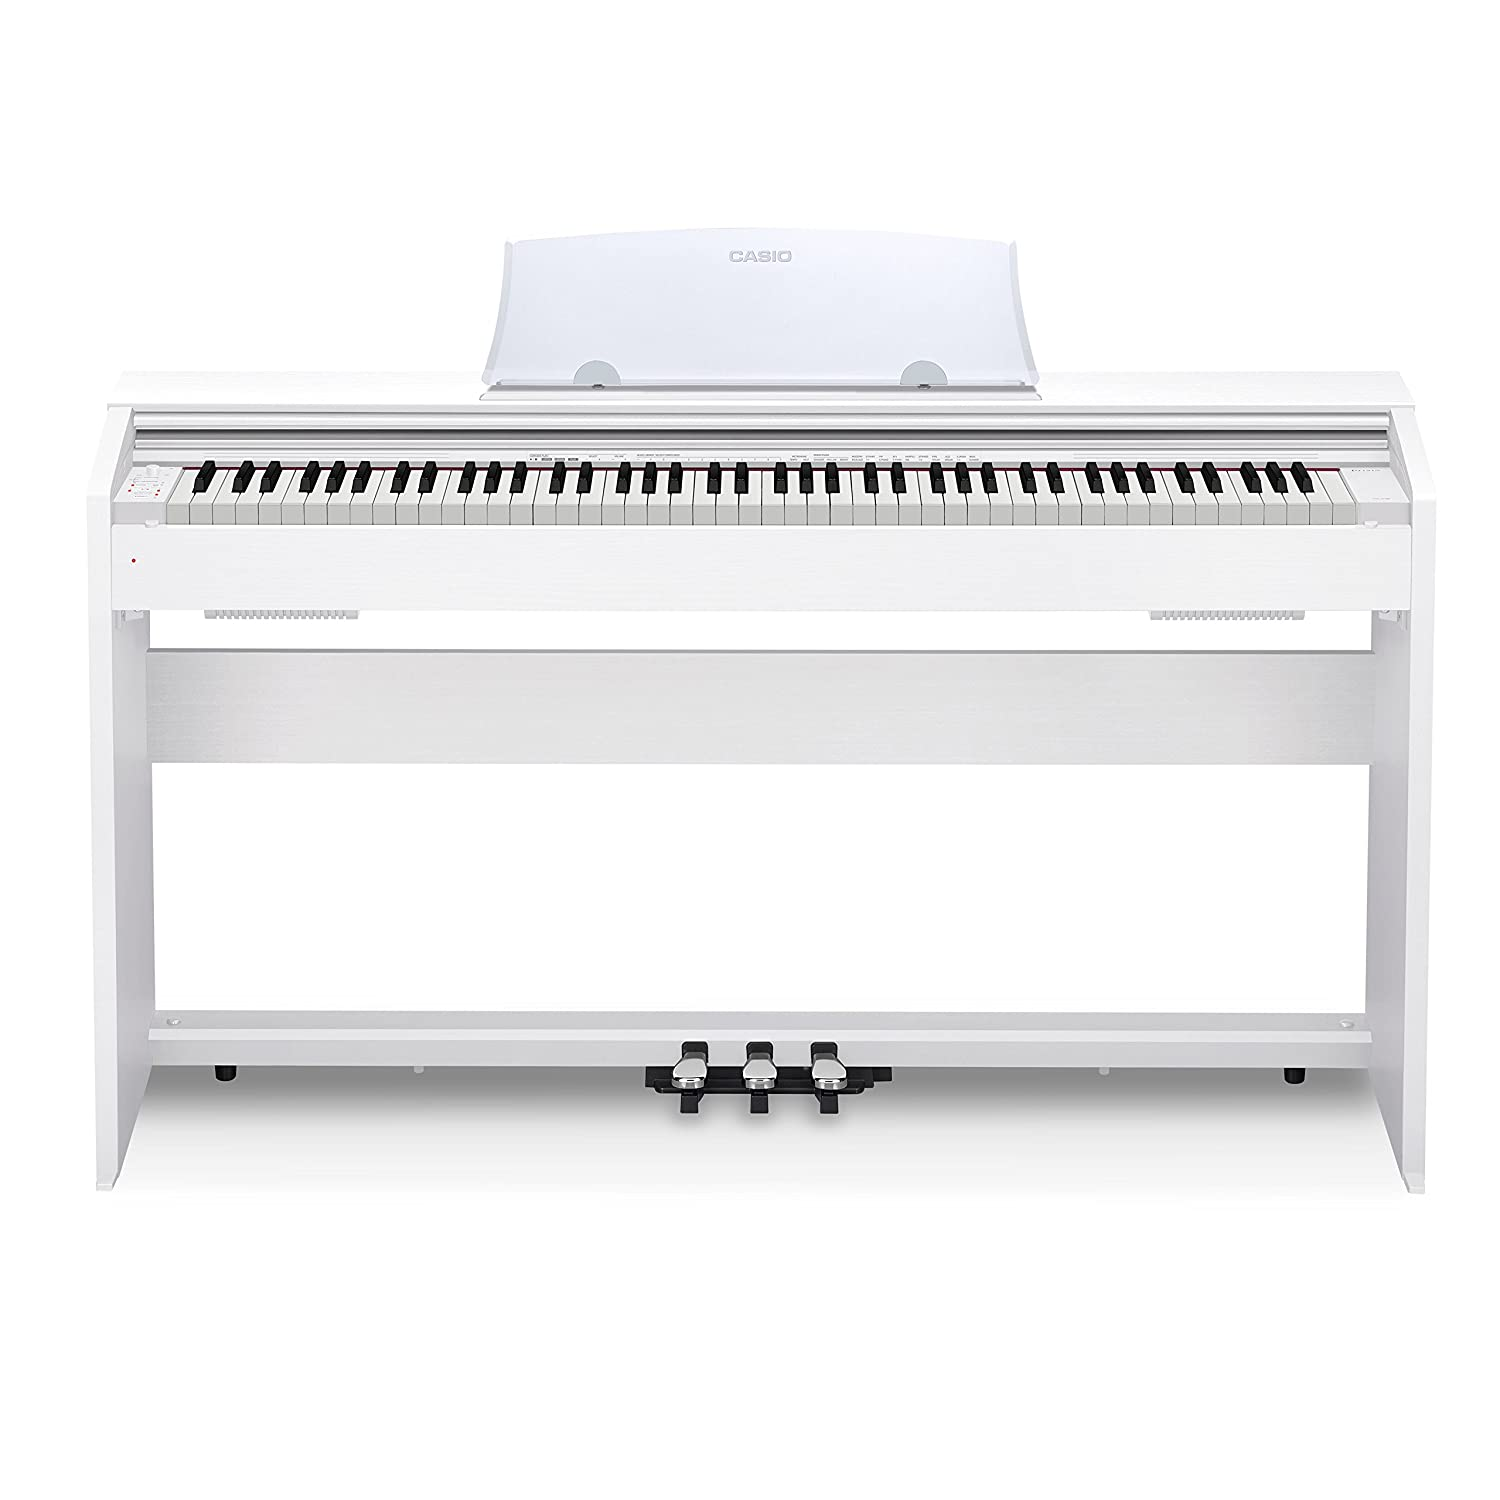 Casio PX770 WH Privia Digital Home Piano, White Casio Inc. PX-770 White